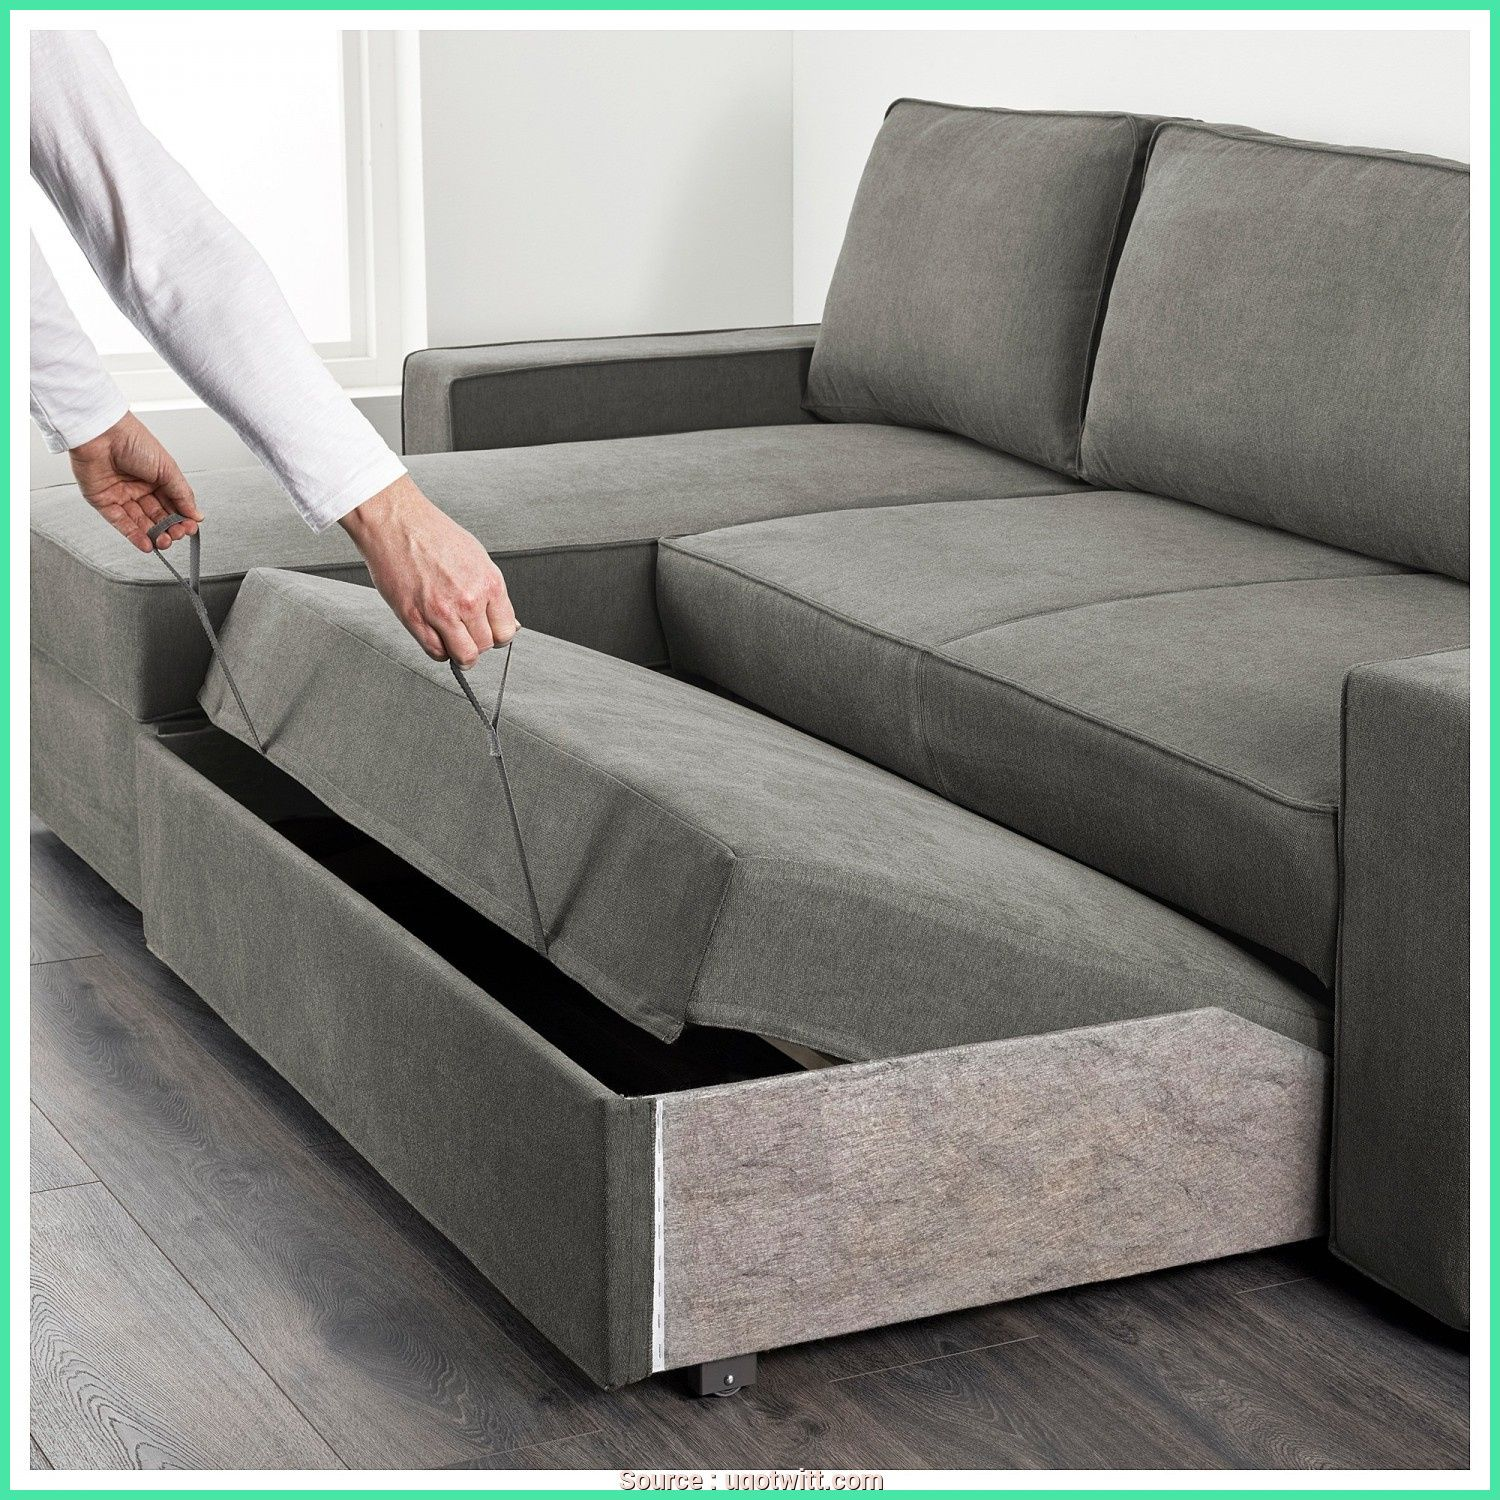 14 Present Ikea Wilj Sofa Bed With Chaise Sofa Bed Ikea Bed